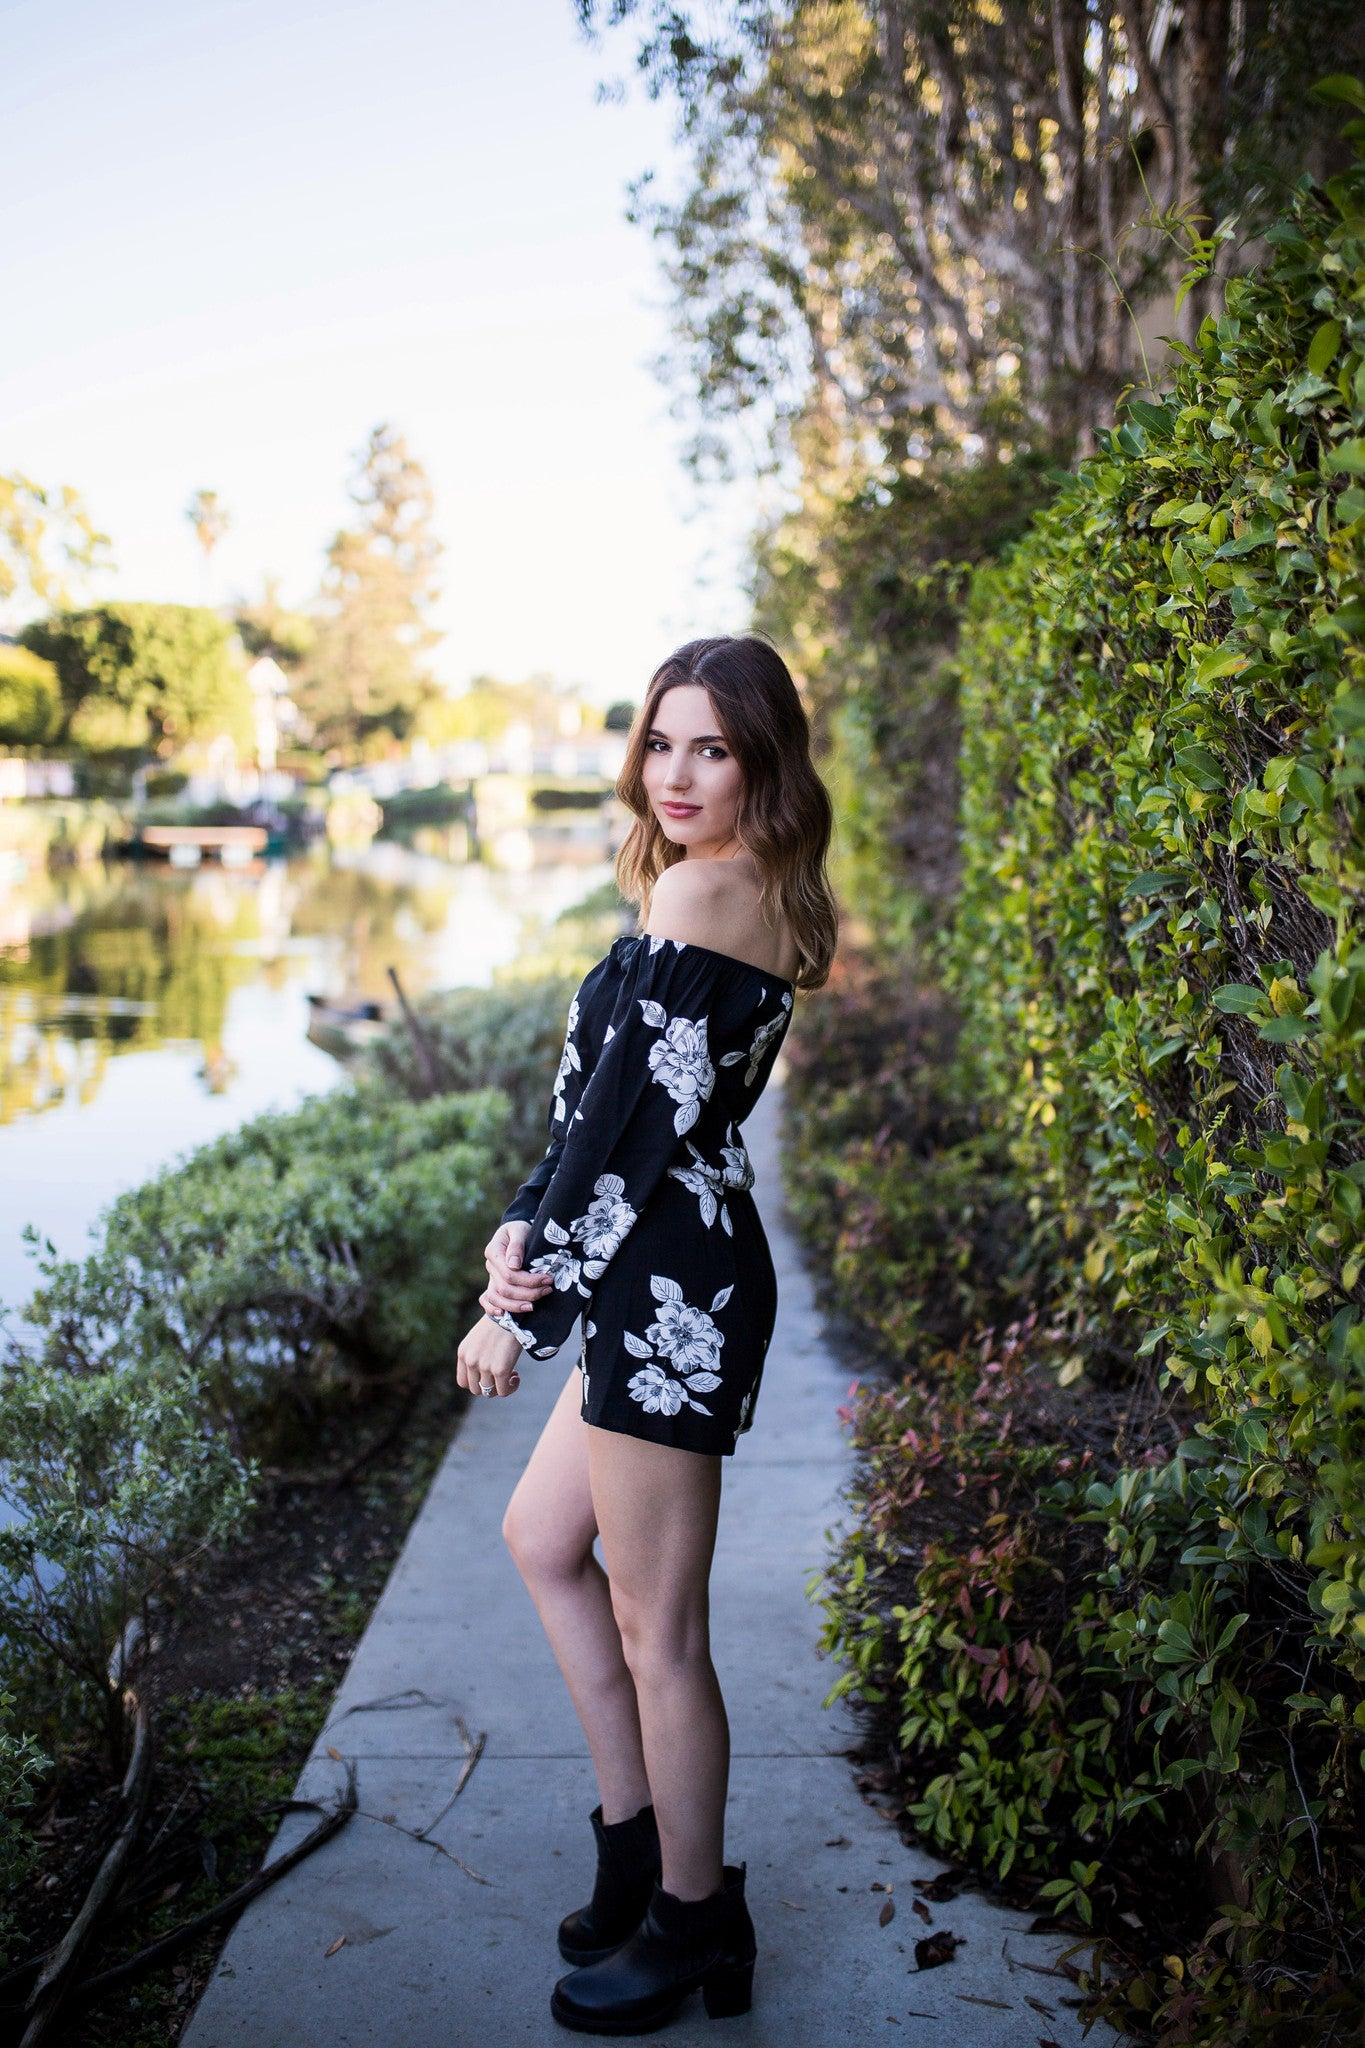 Night outfit for packing black and white floral romper